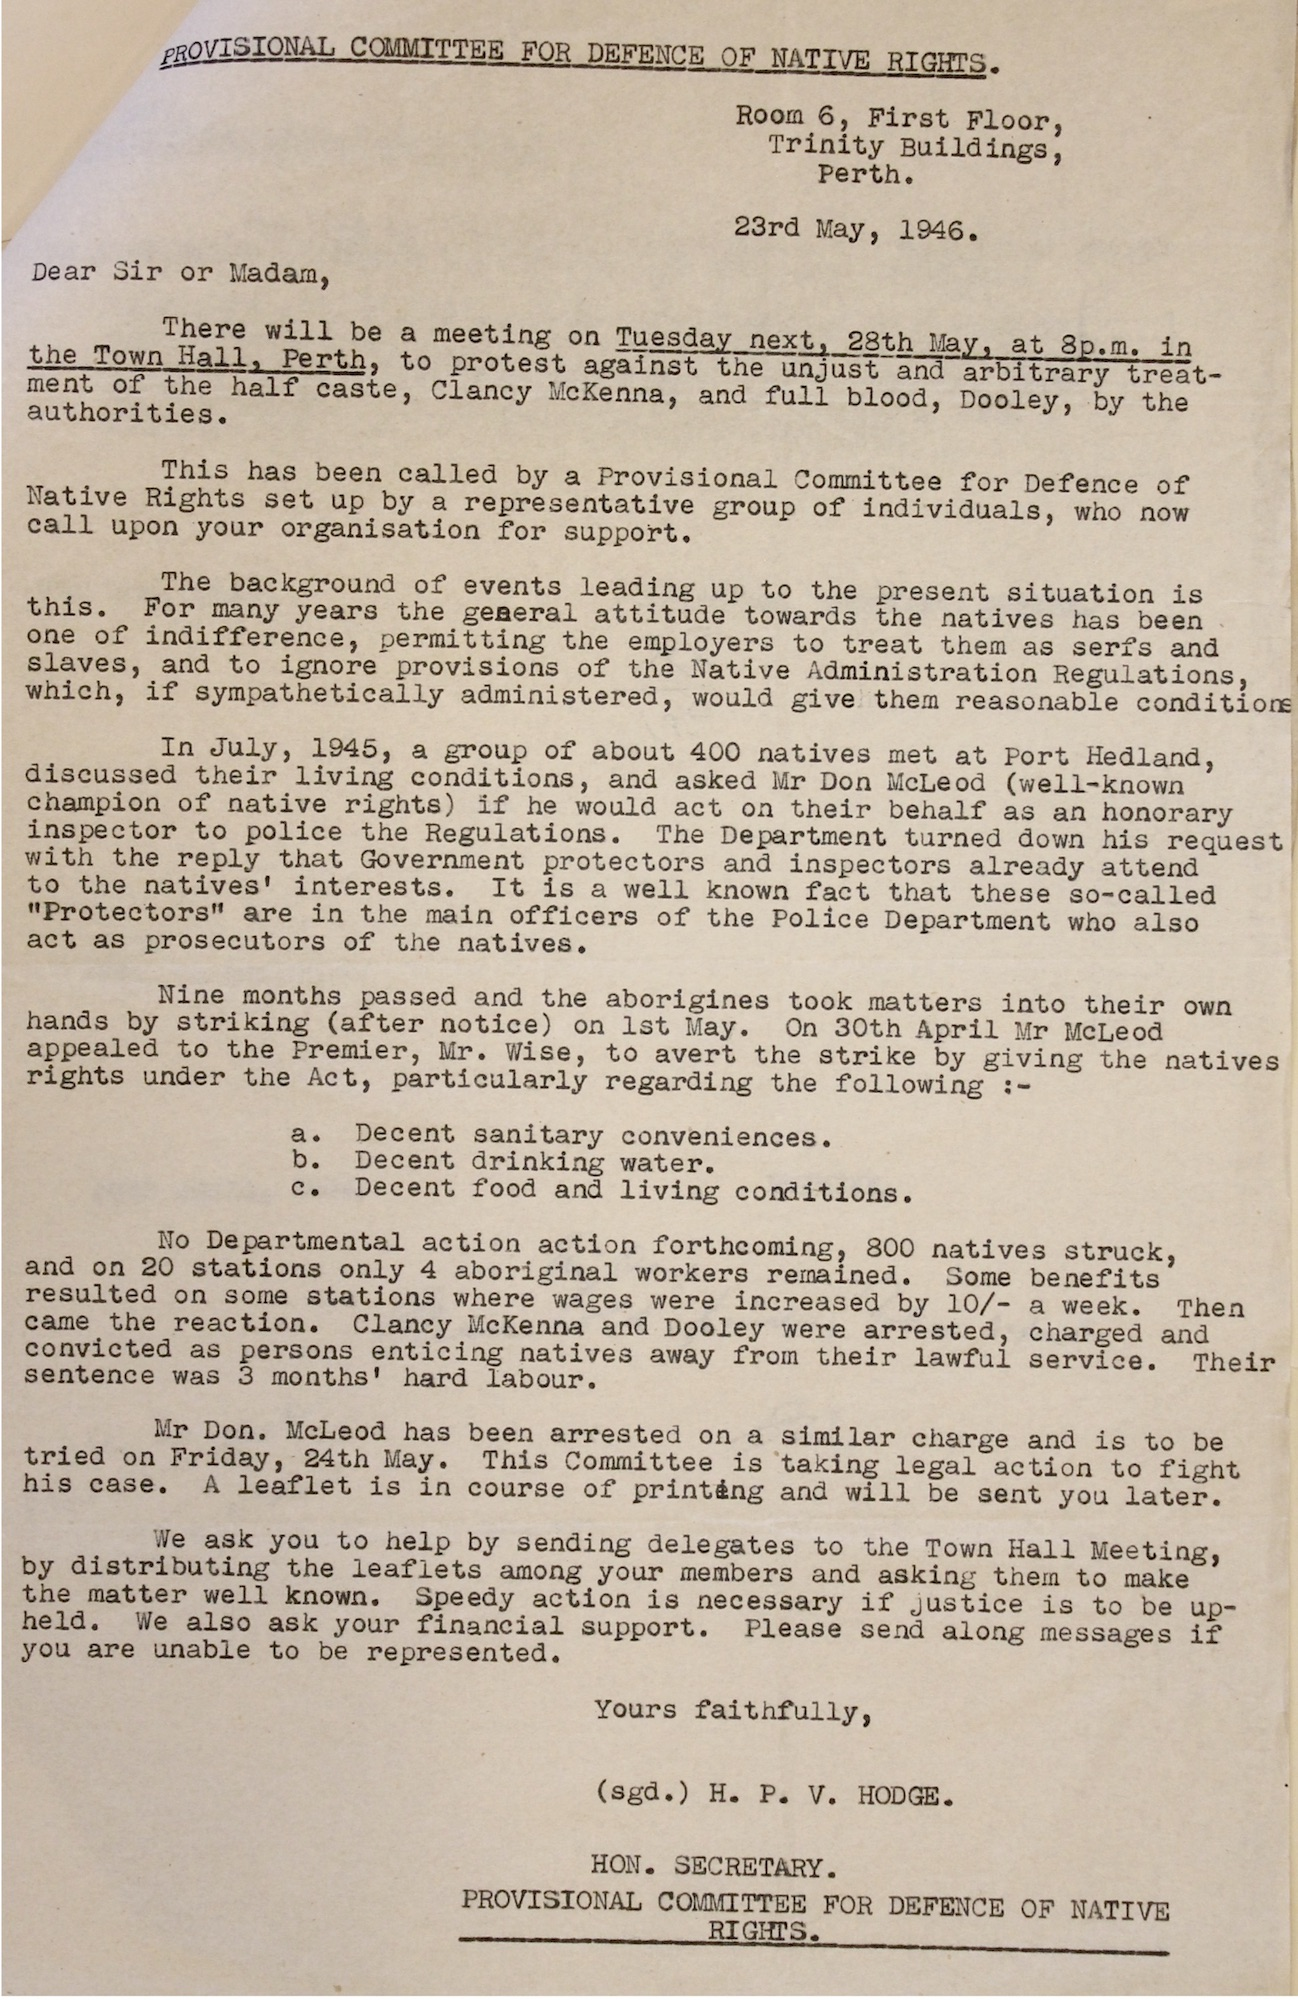 Committee for Defence of Native Rights Circular, 1946